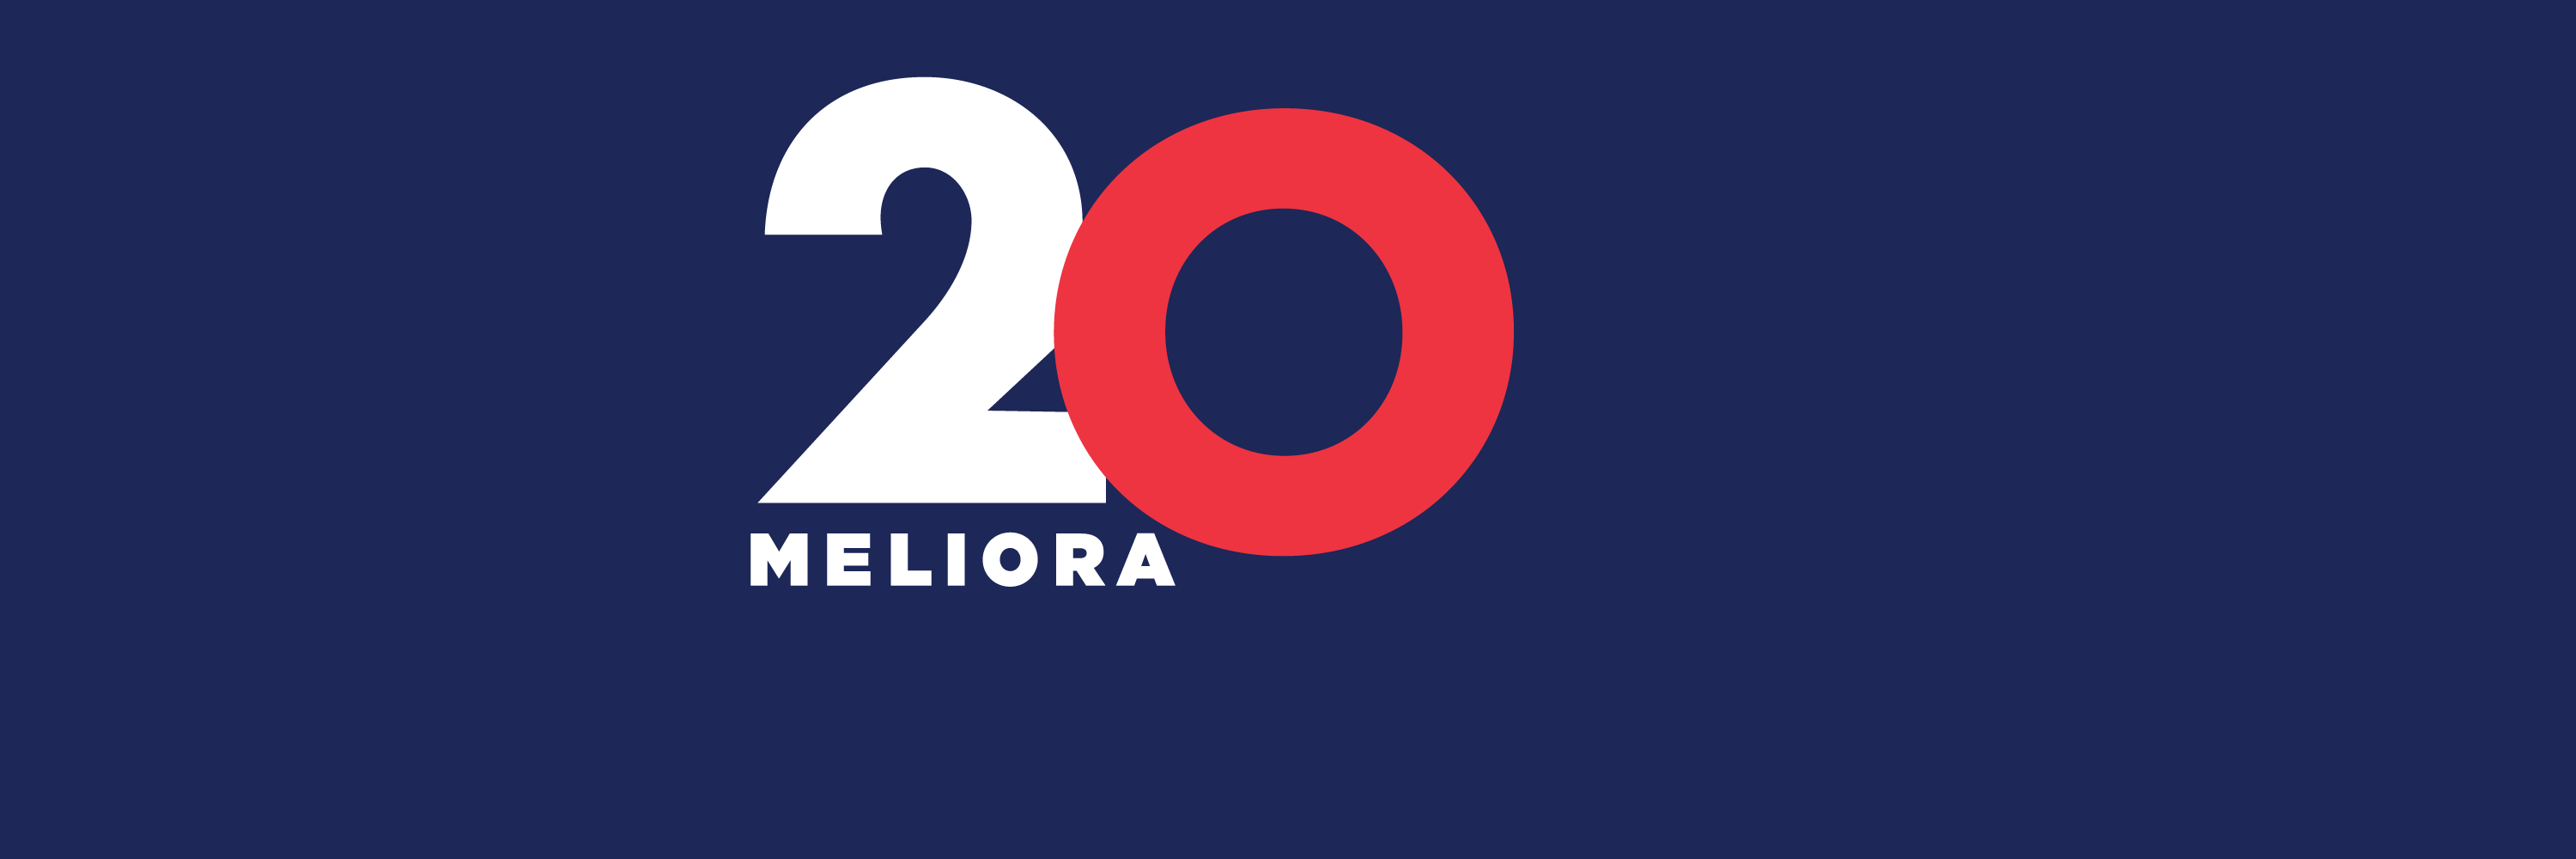 Meliora and the numbers 2 and 0 on a dark blue background